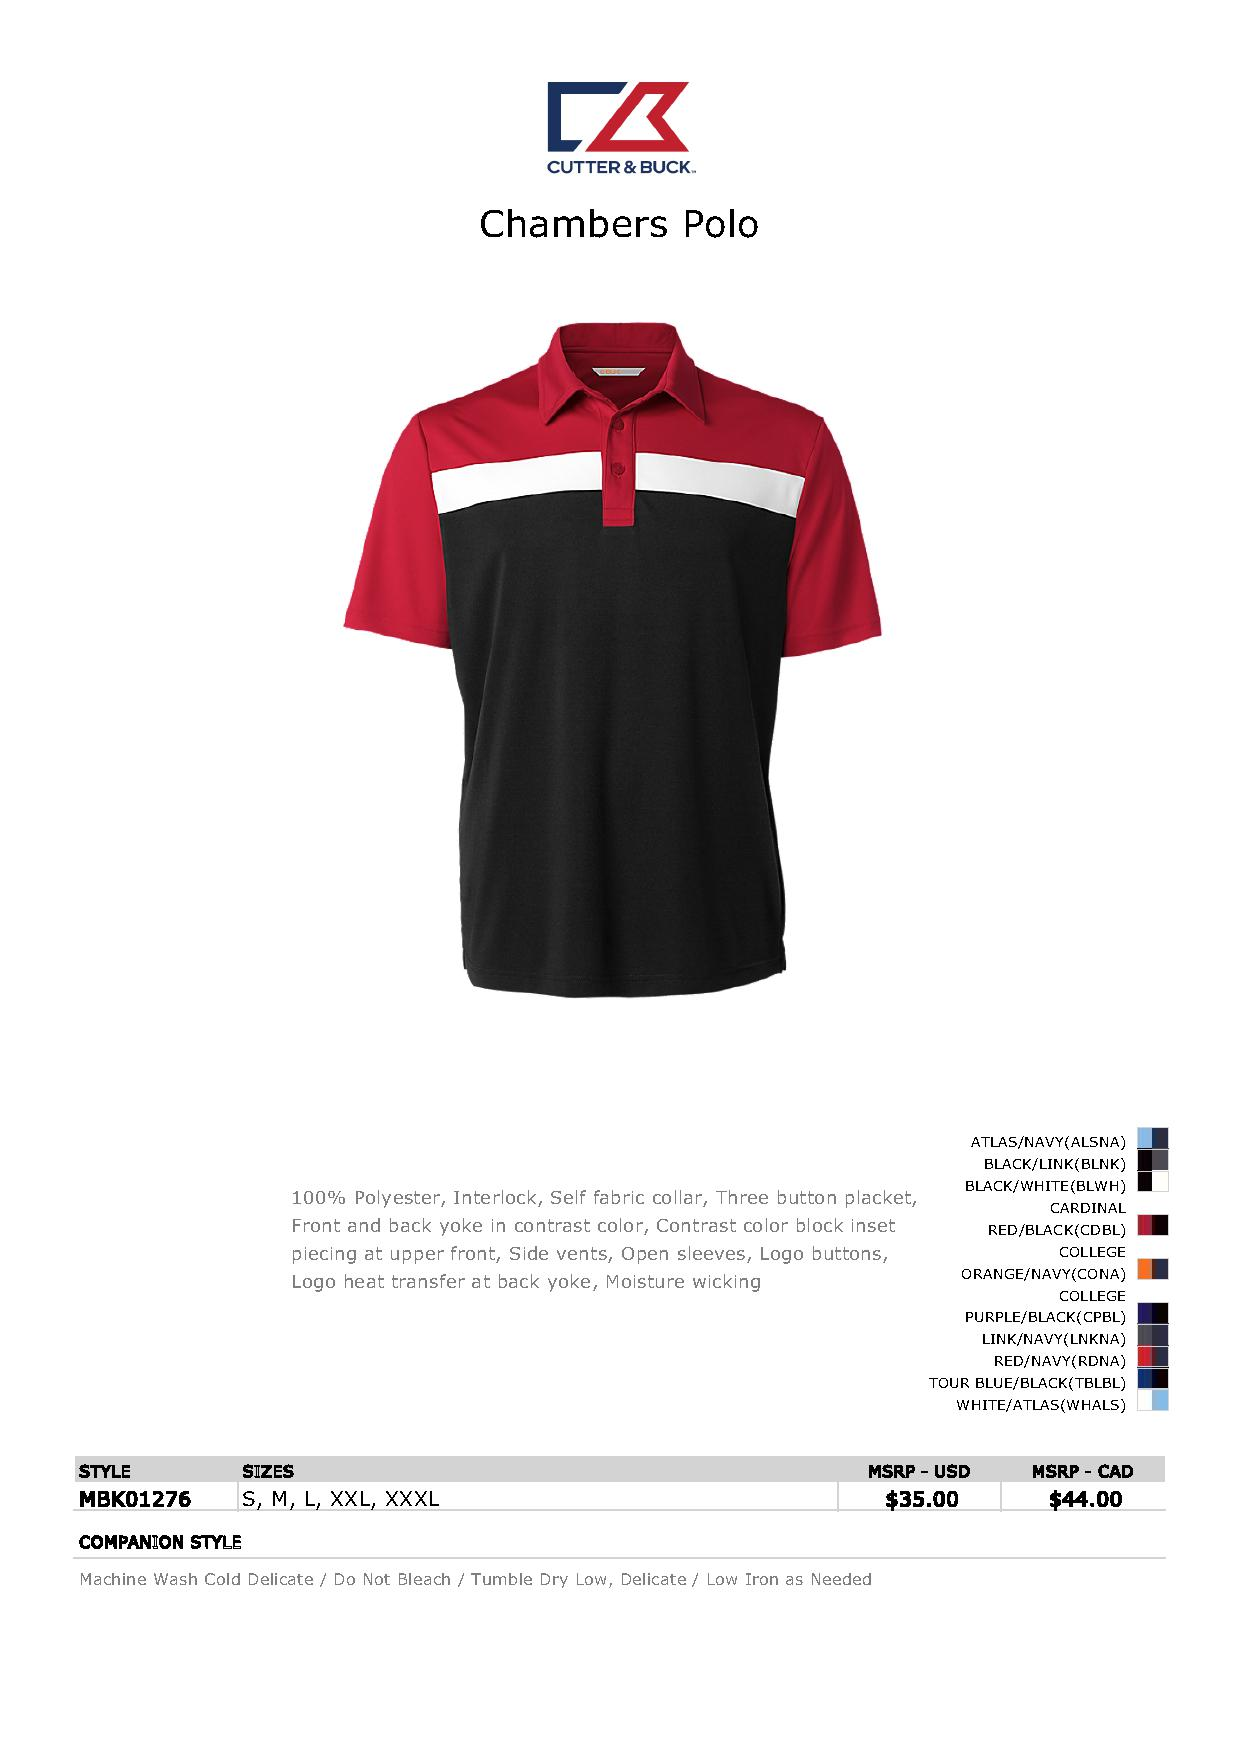 788563119 Popular Designs. custom design of CUTTER & BUCK MBK01276 - Men's Chambers  Polo